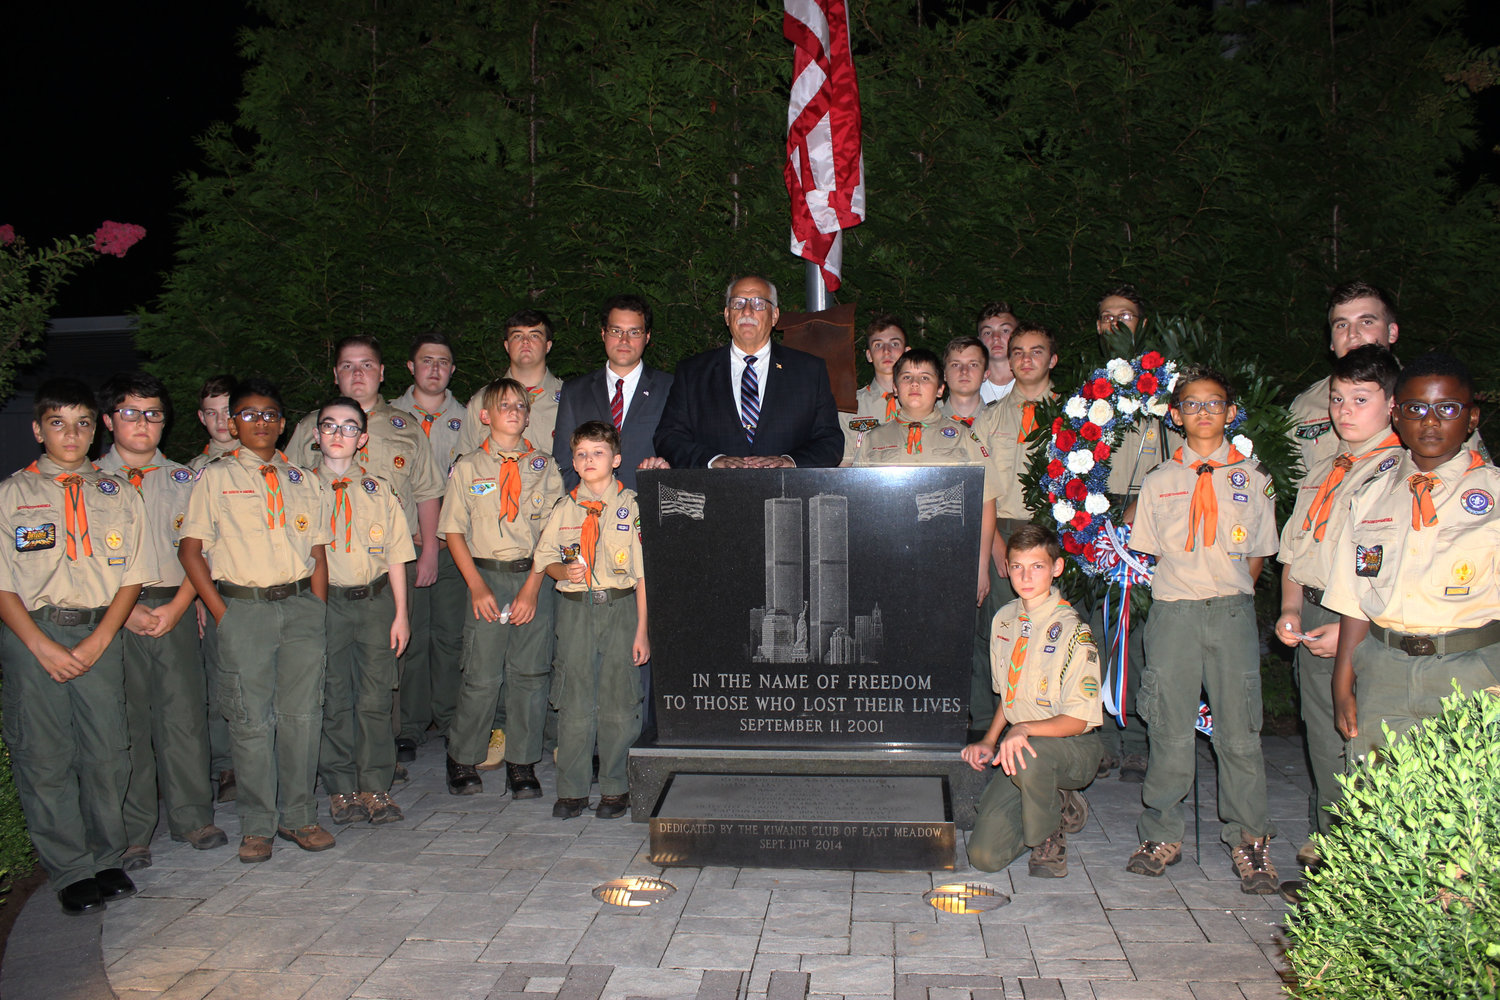 East Meadow Boy Scout Troop 362 paid tribute to those who lost their lives in the Sept. 11 attacks at the East Meadow Fire Department's annual ceremony in Veterans Memorial Park. With them were State Assemblyman John Mikulin and Hempstead Town Councilman Dennis Dunne.